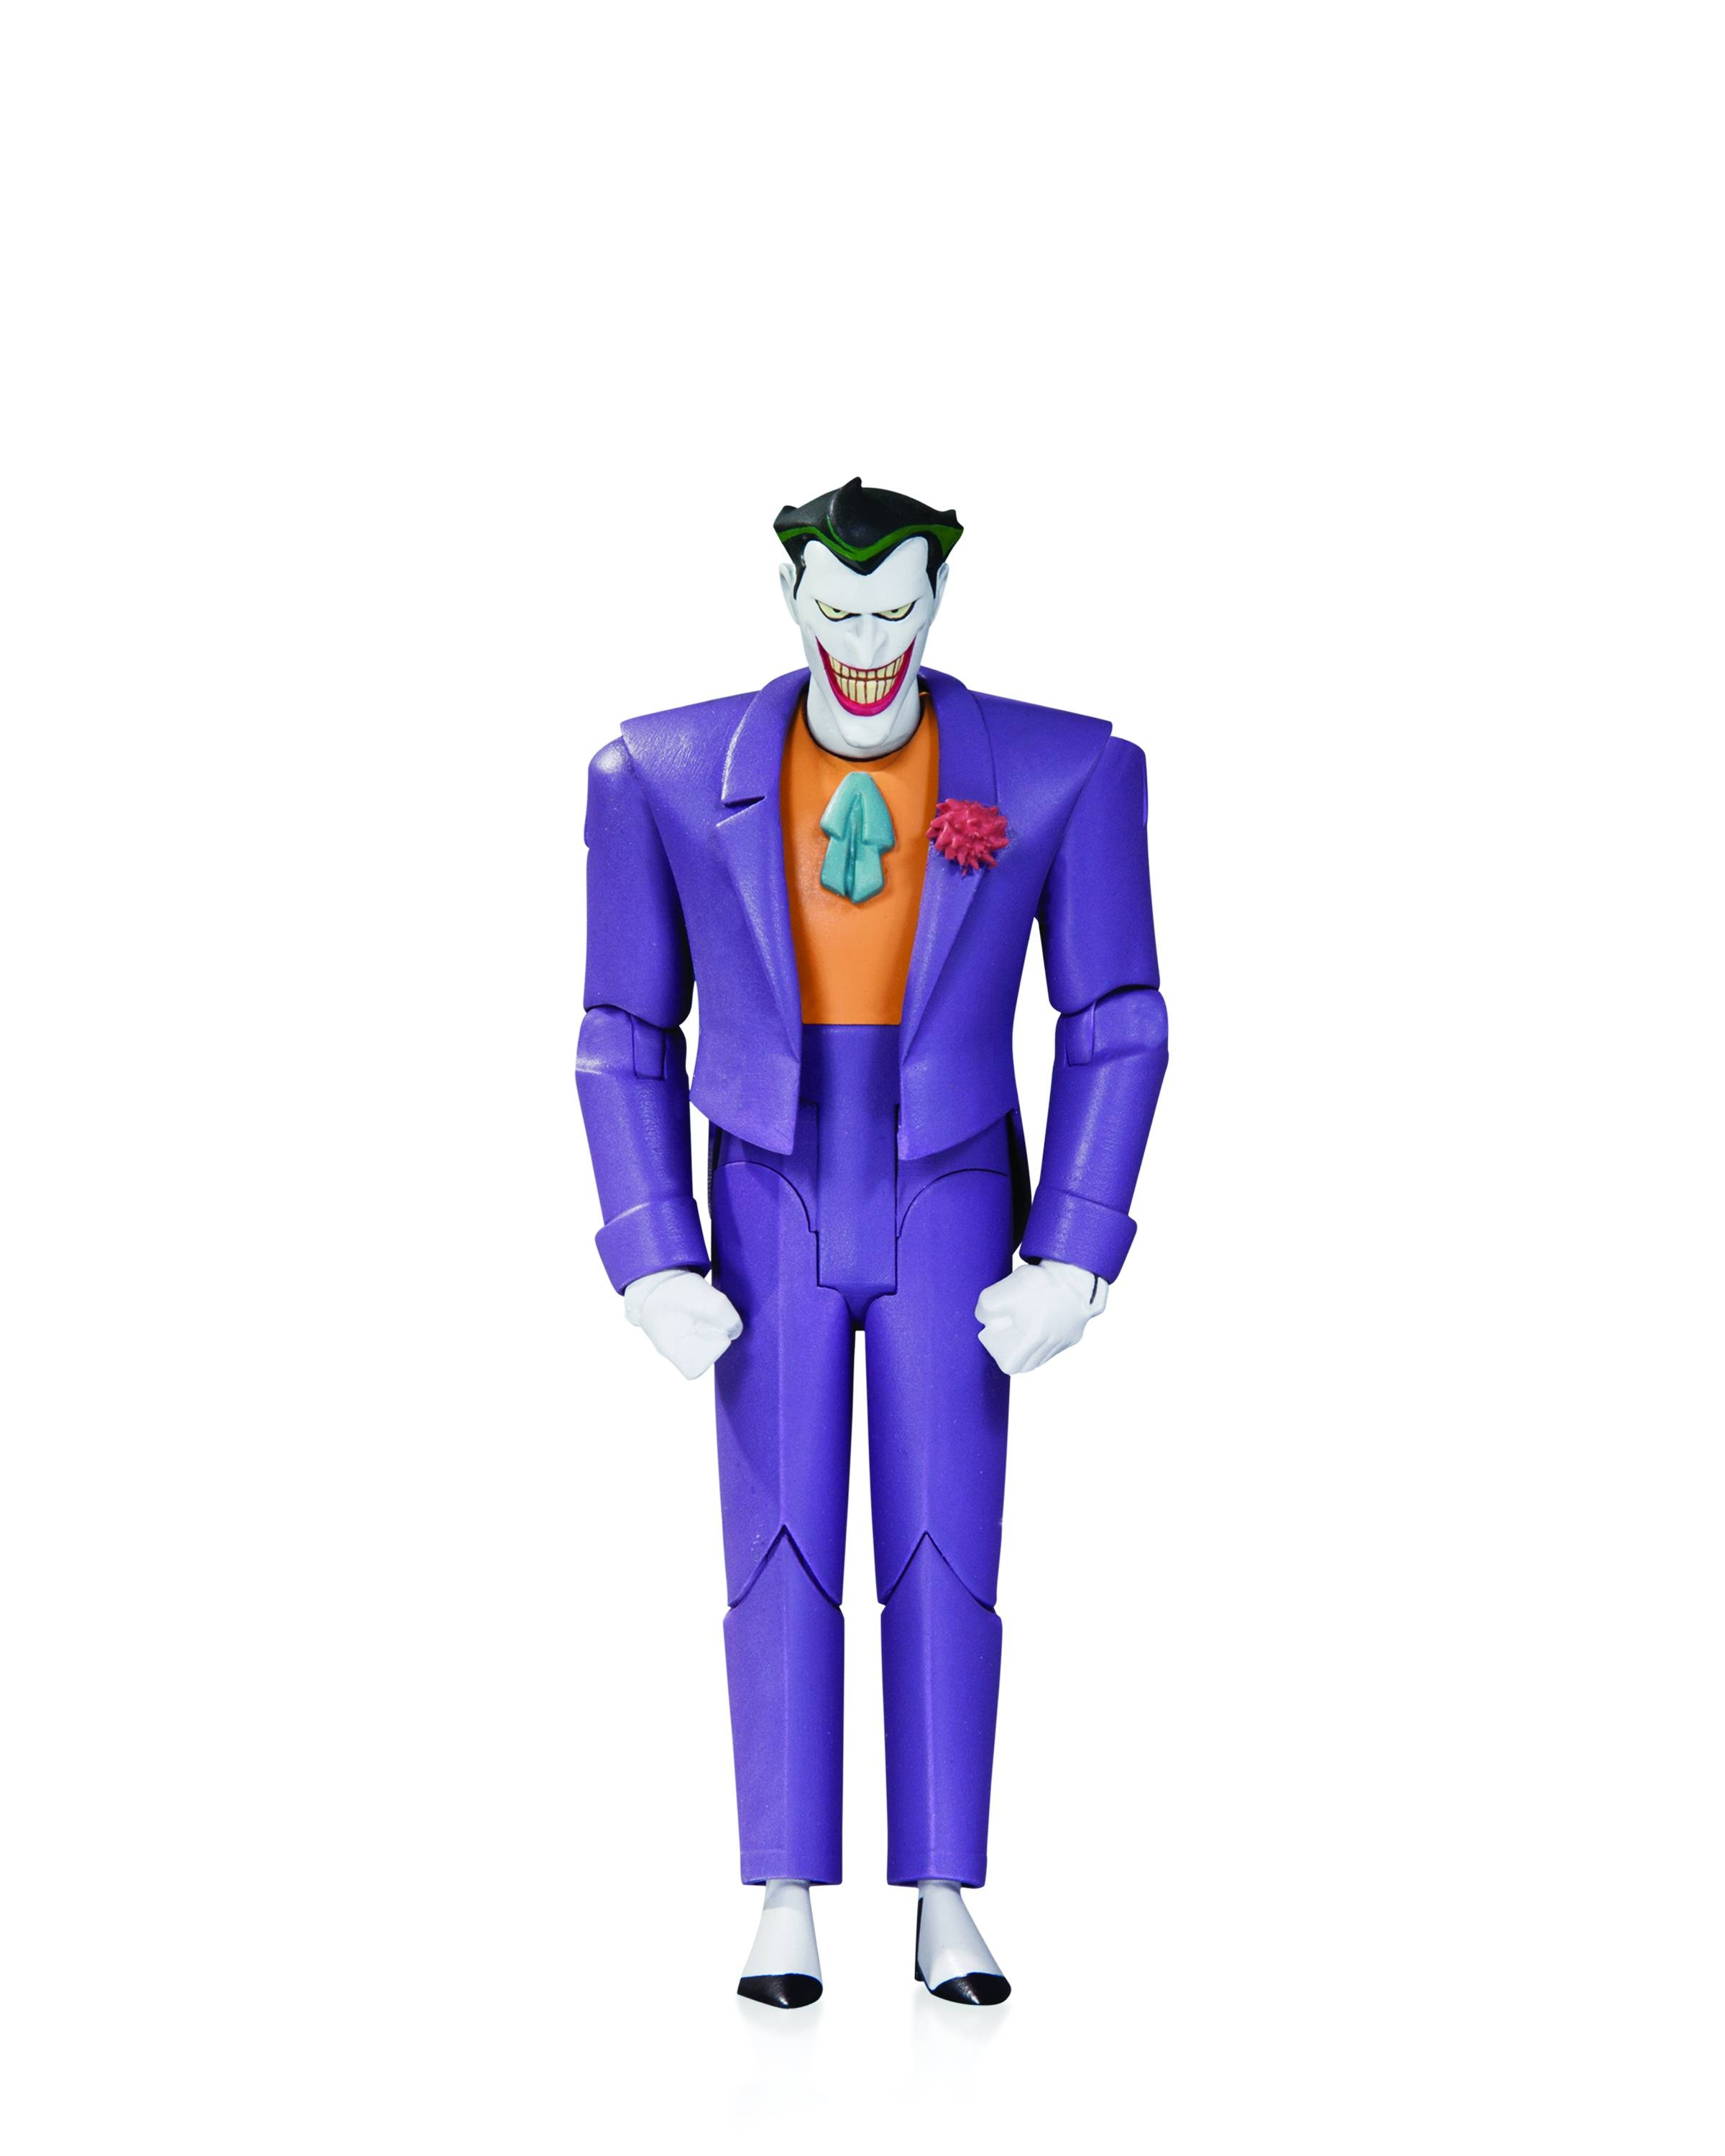 BATMAN ANIMATED SERIES JOKER AF